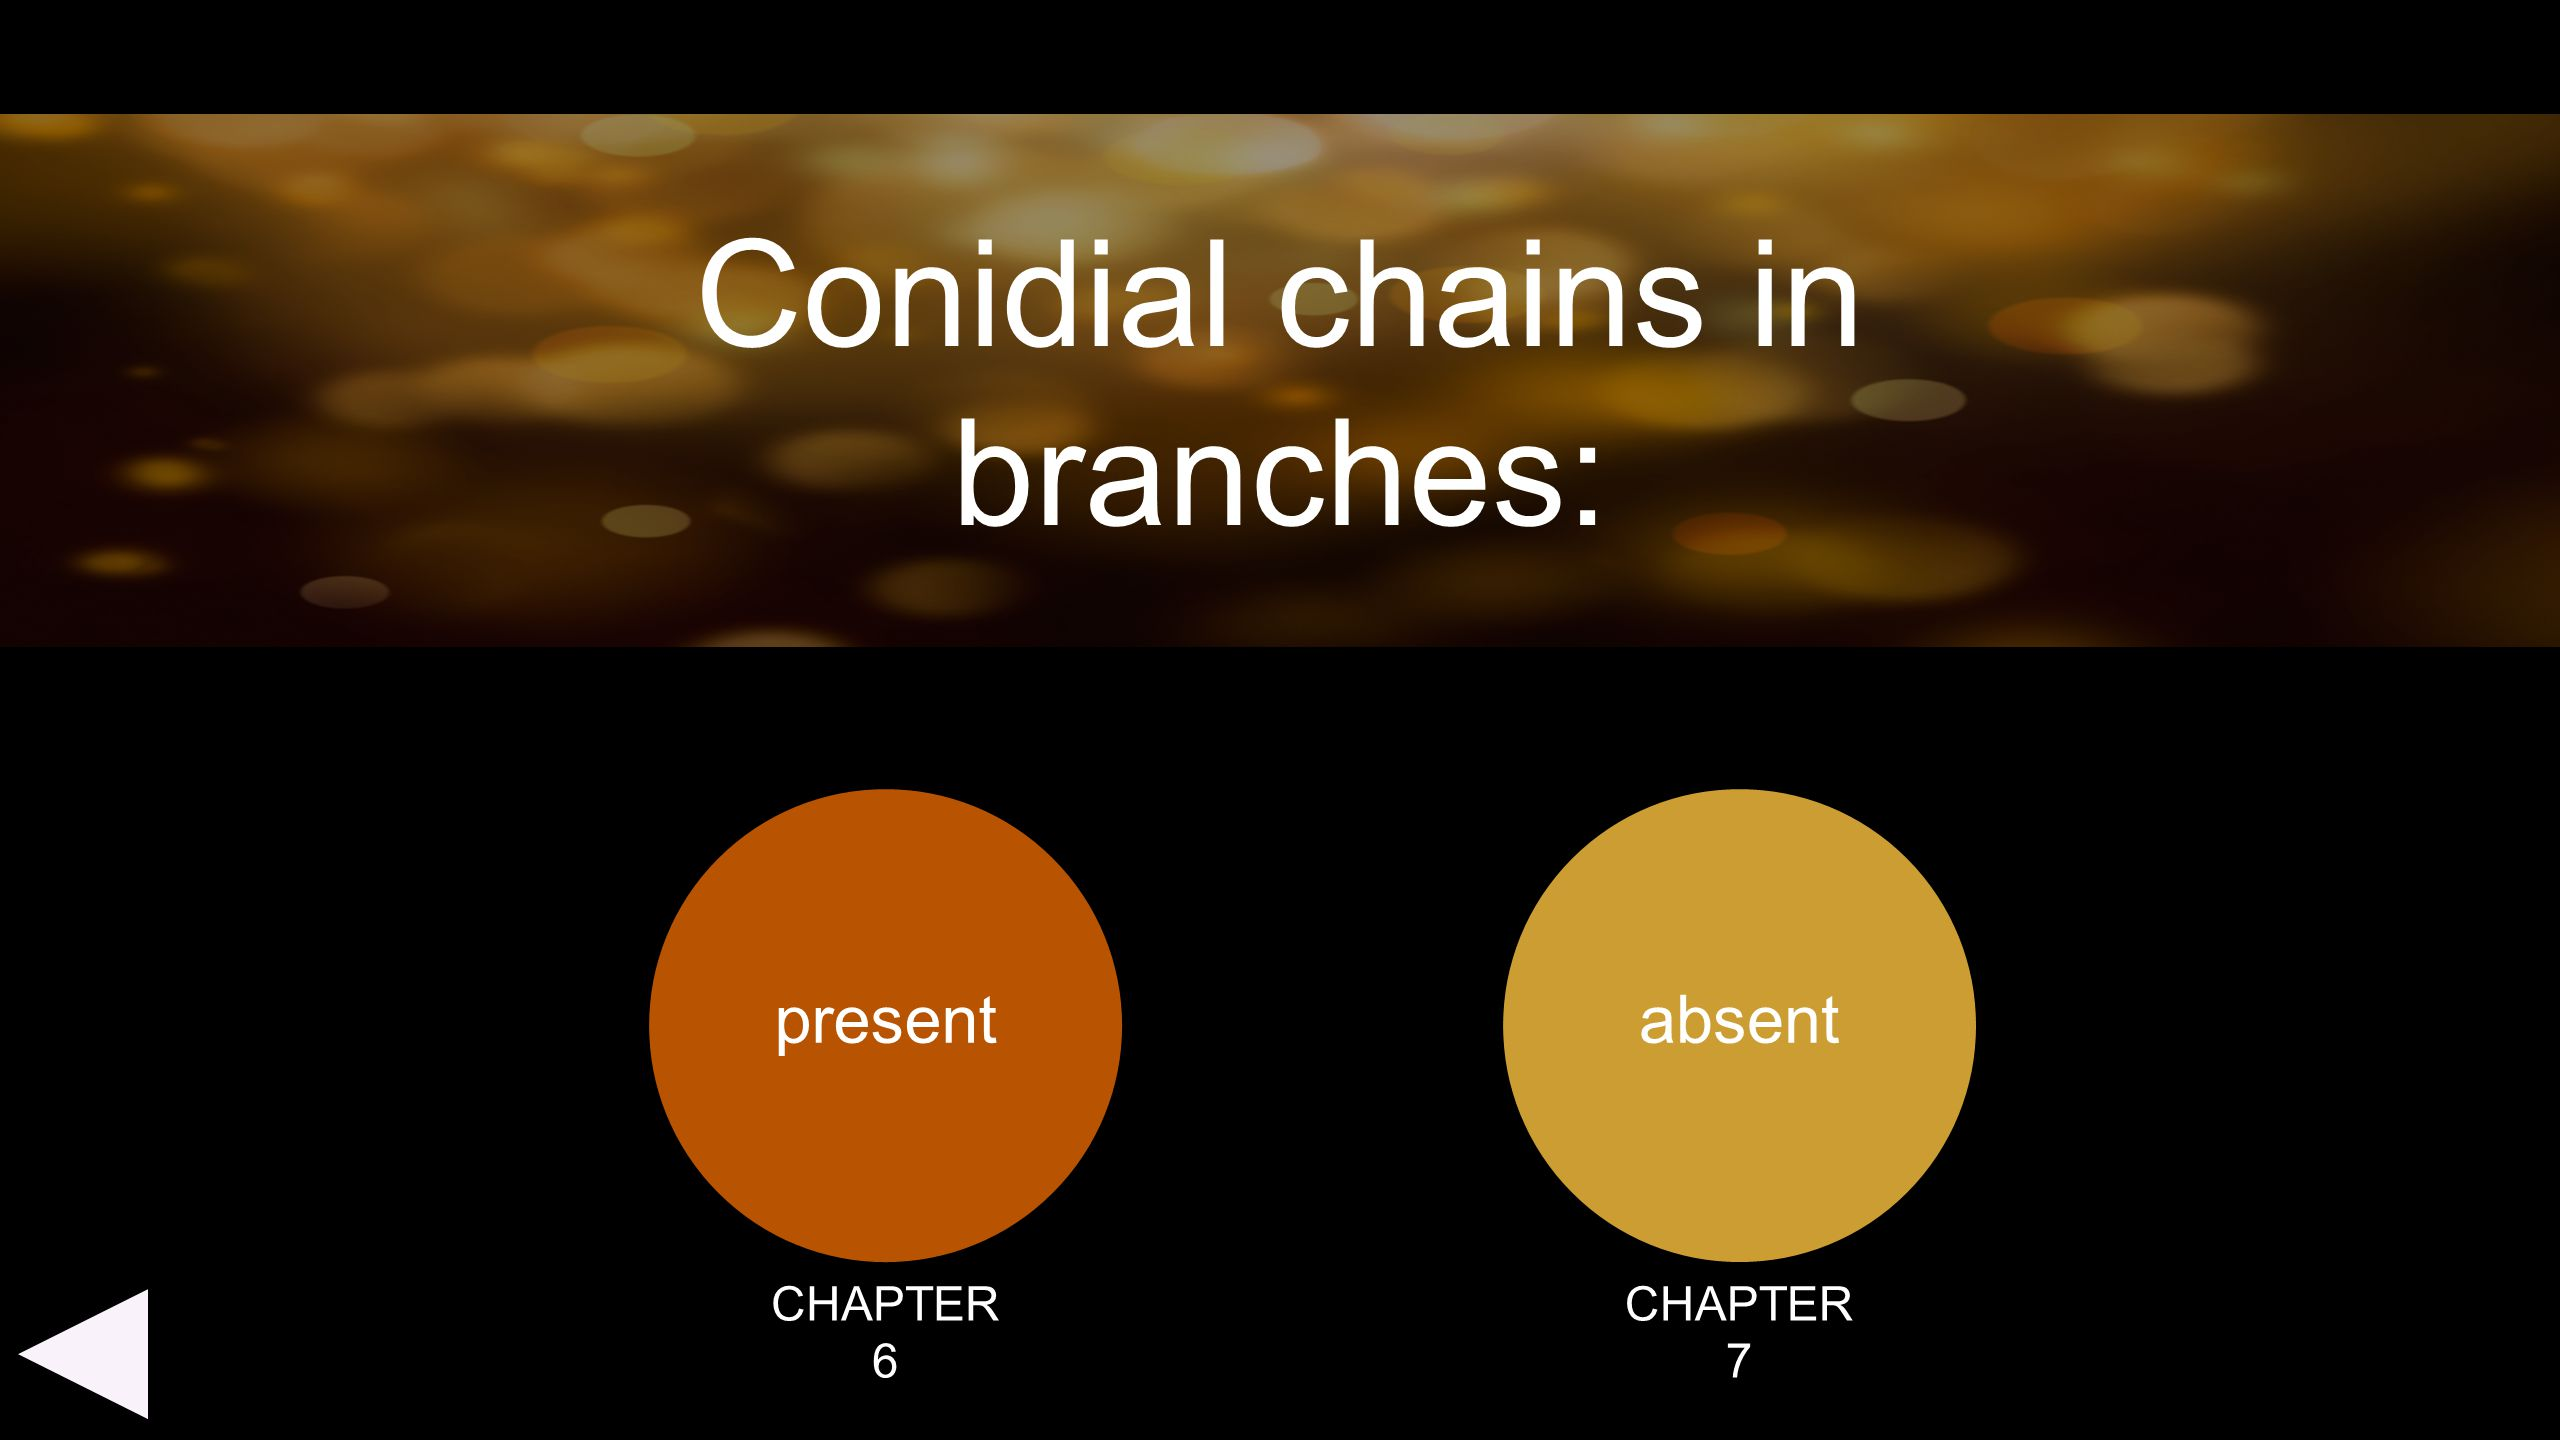 Conidial chains in branches: